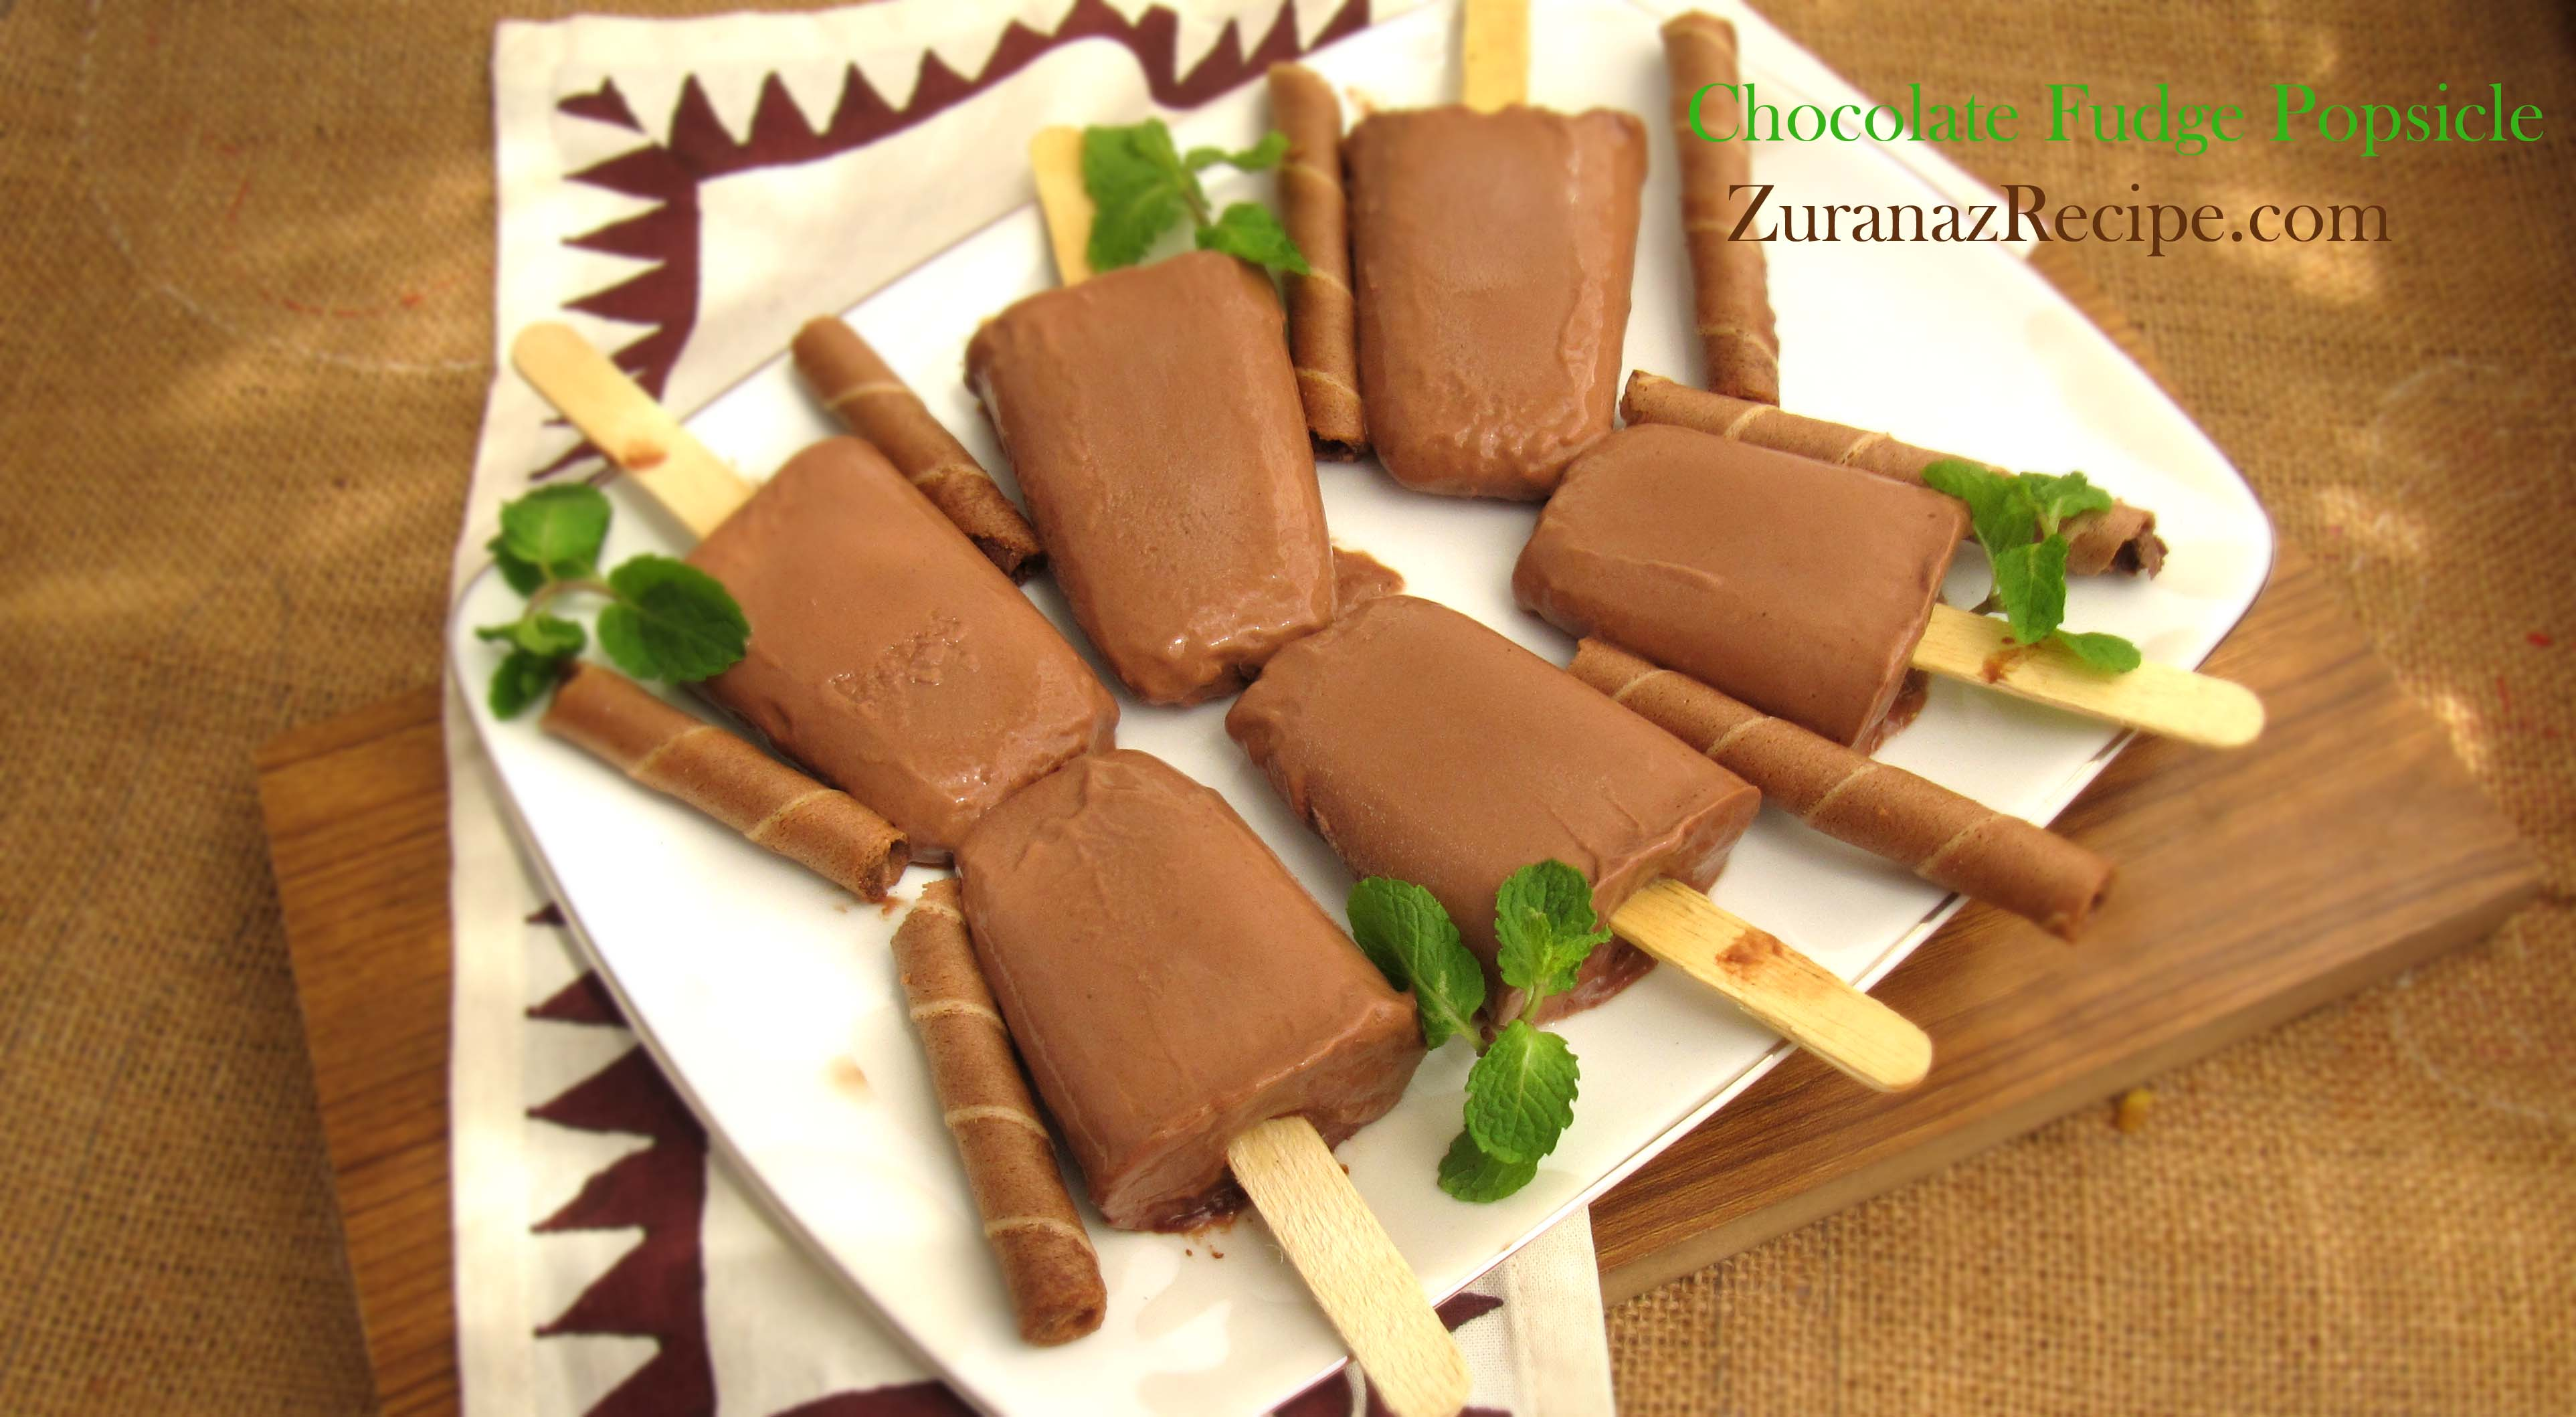 Creamy Chocolate Fudge Popsicles